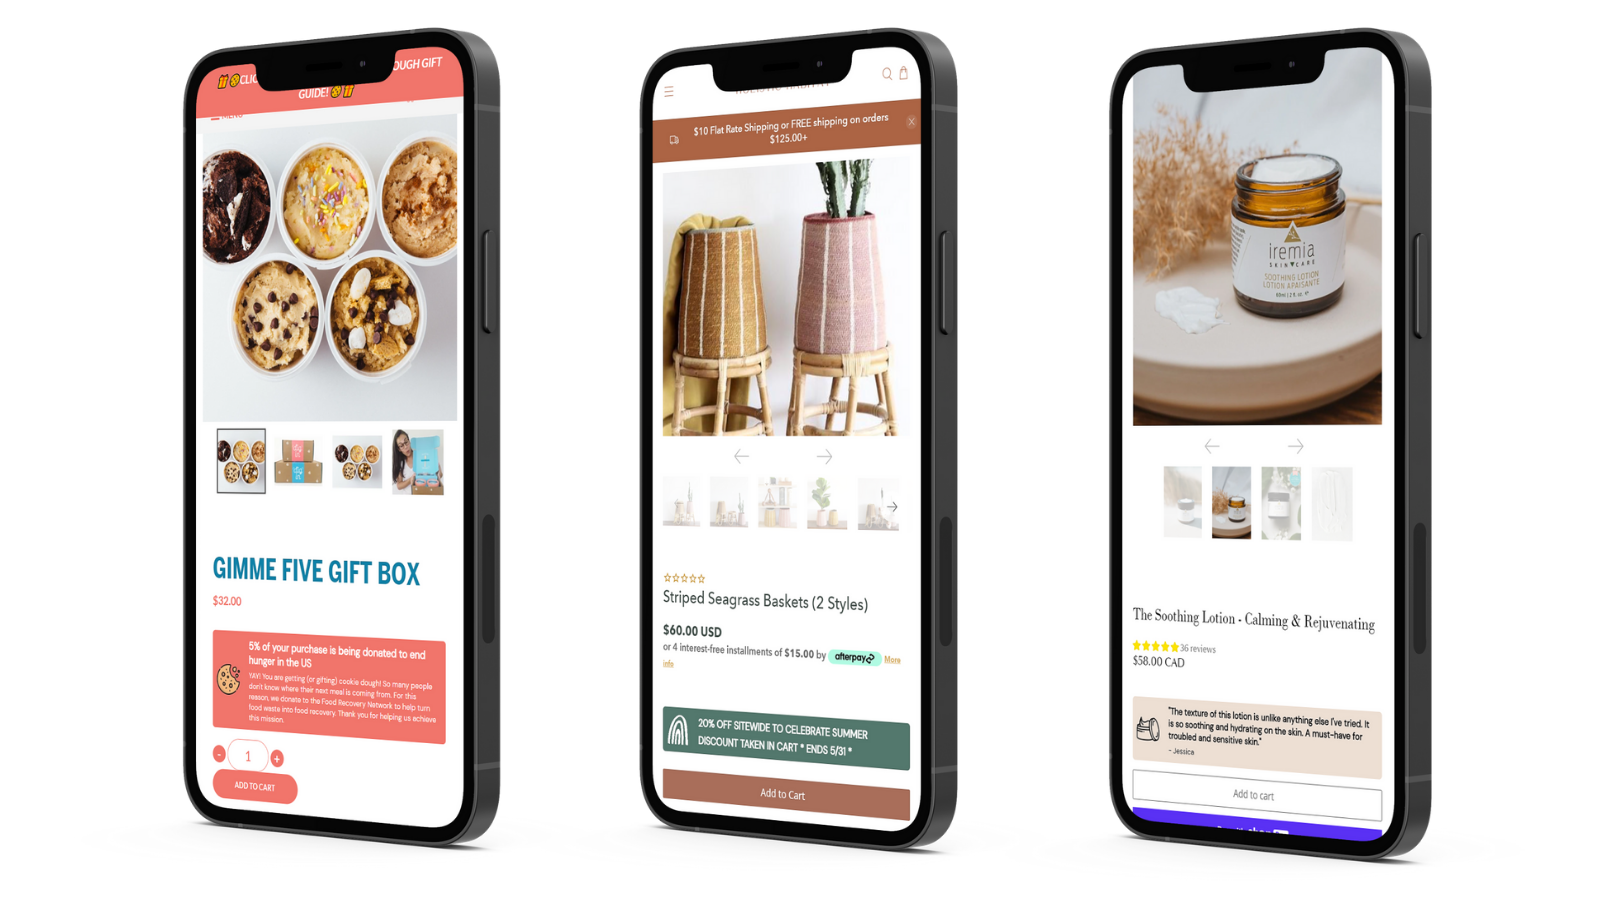 Banners on product pages